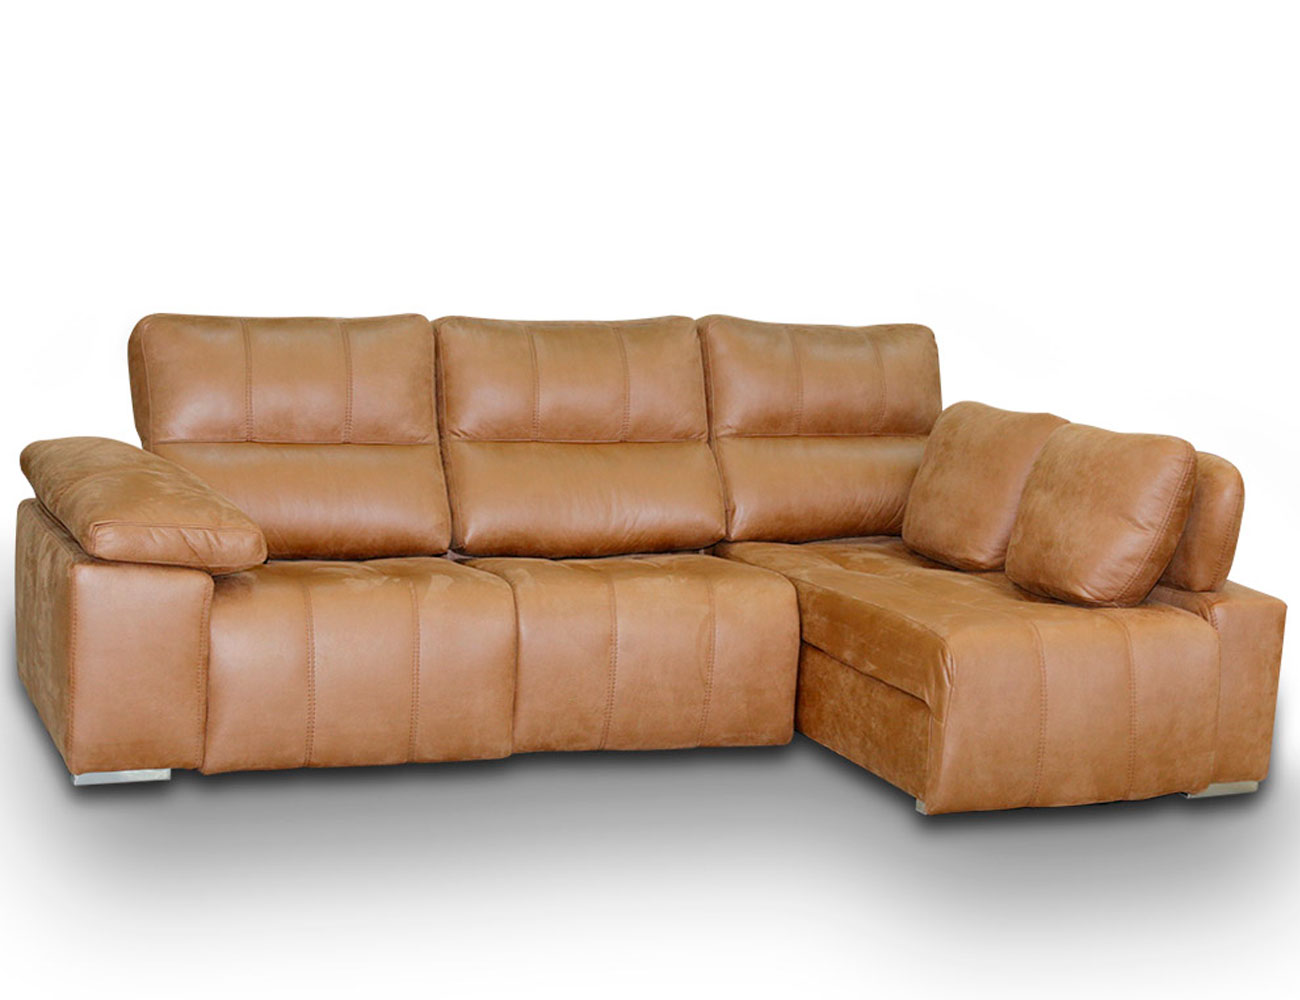 Sofa chaiselongue relax 2 motores anti manchas8